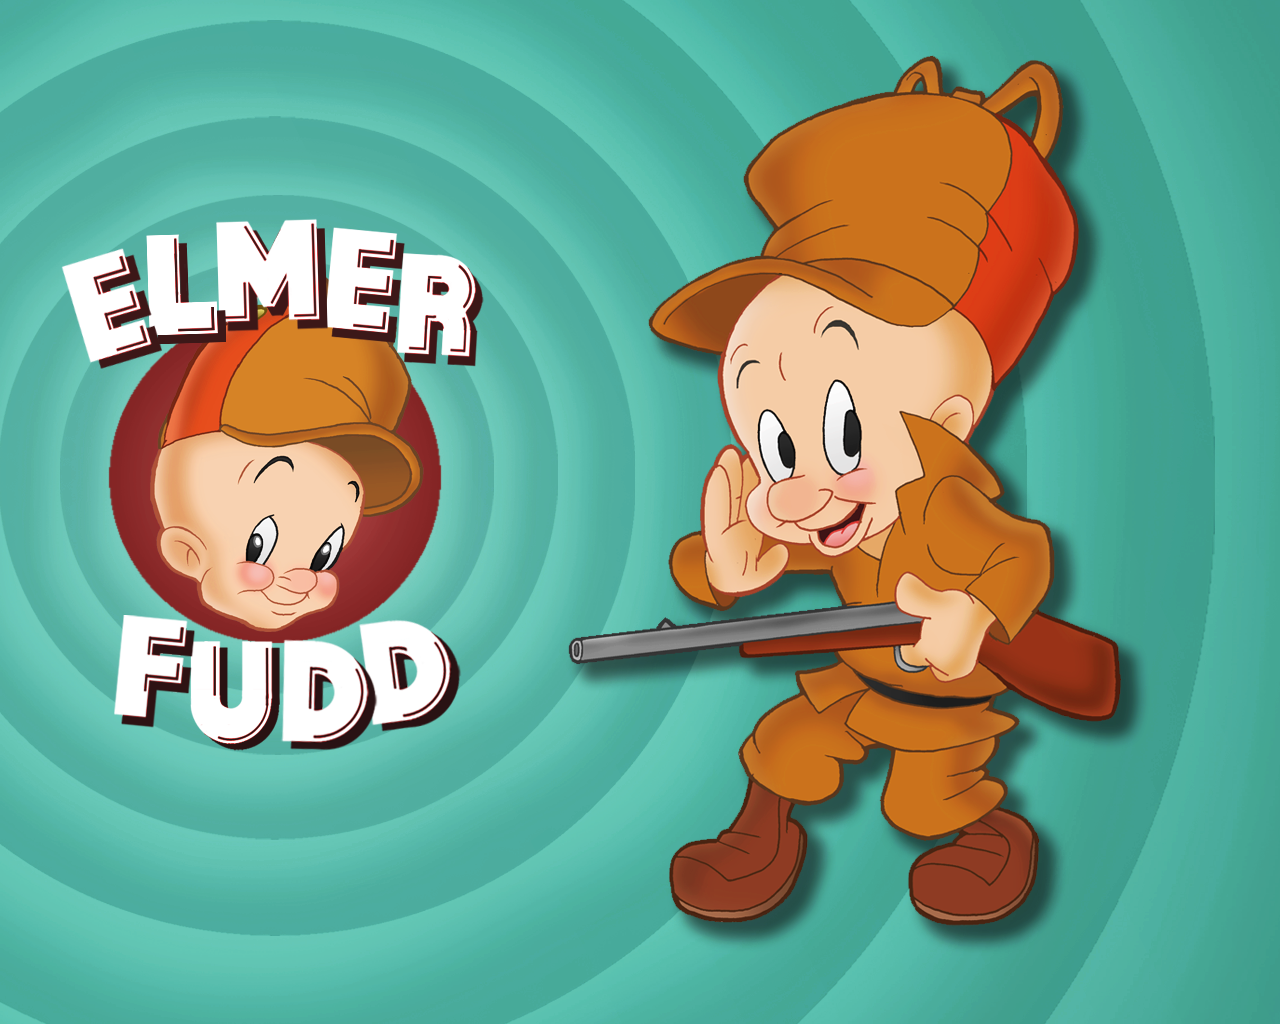 Elmer_Fudd_Wallpaper_by_E_122_Psi.png